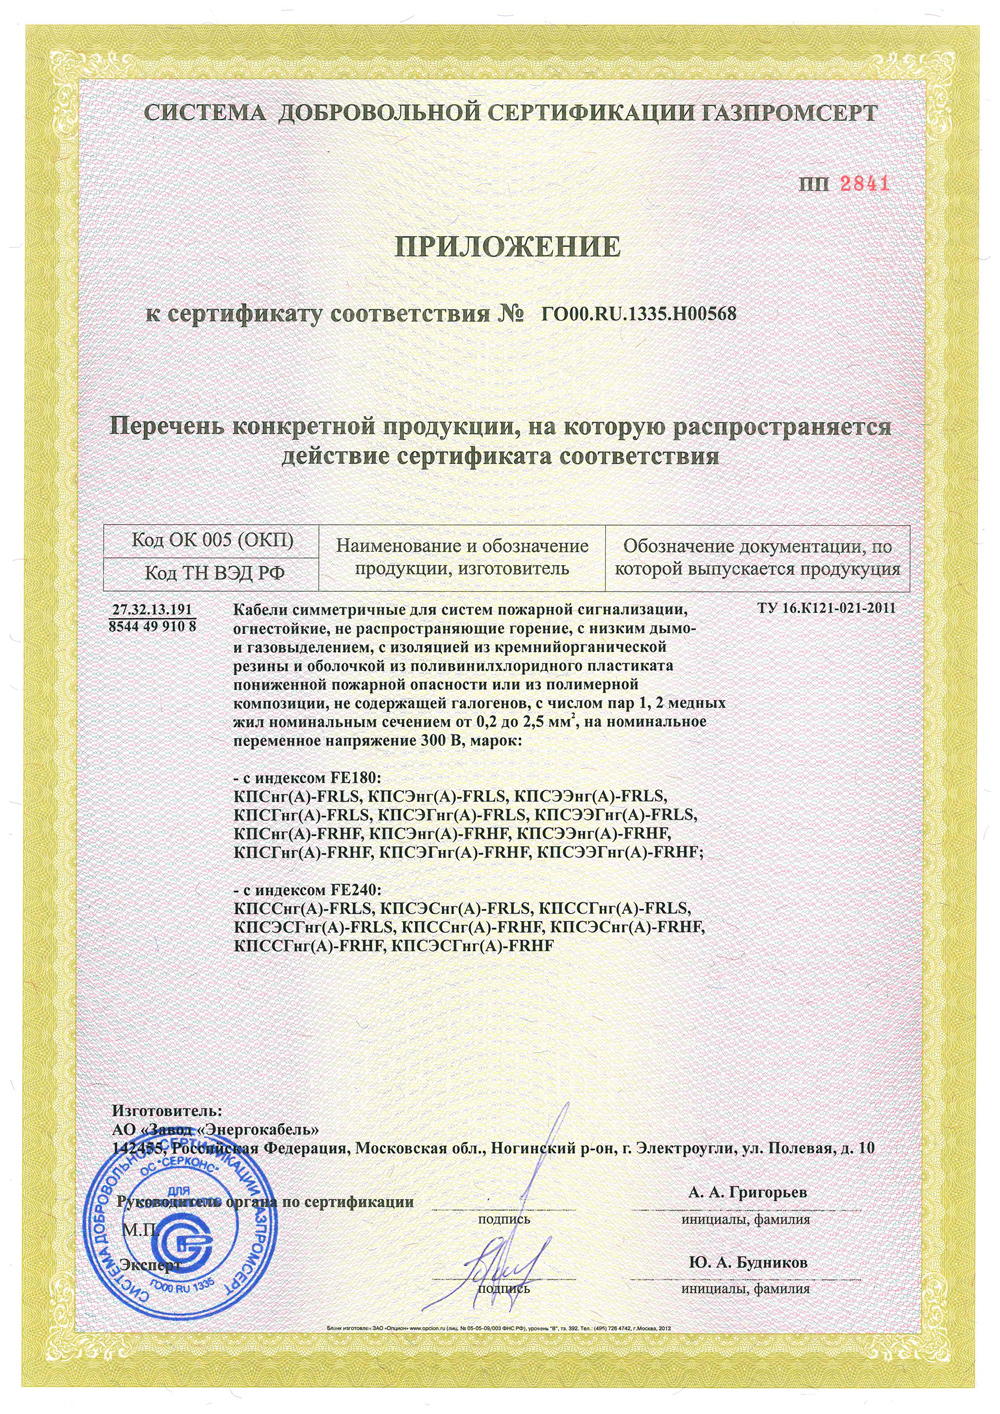 The appendix to the certificate of Conformity № ГО00.RU.1335.Н00568.